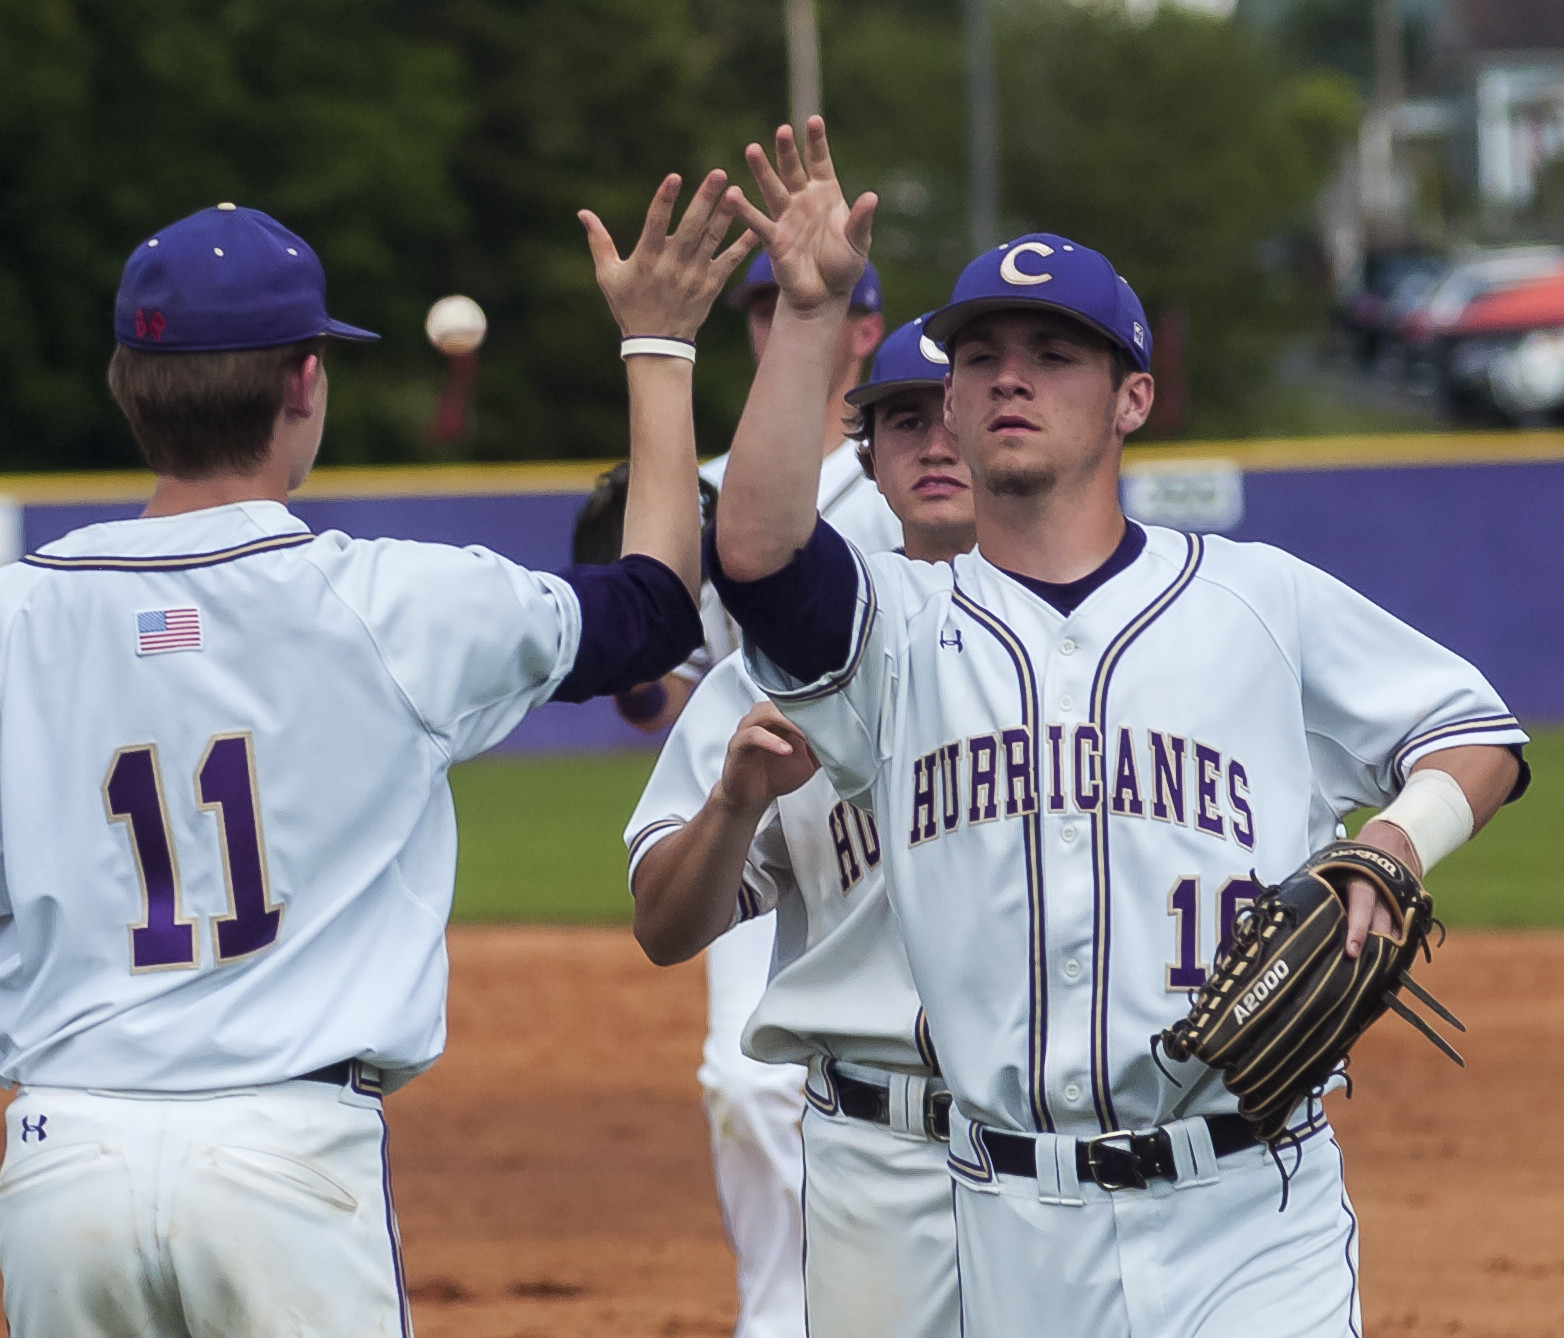 Cohen Wilbanks (11) and J.P. Martin celebrate during Game 1 of Cartersville's Class 4A state quarterfinal series with Spalding on Wednesday at Richard Bell Field.